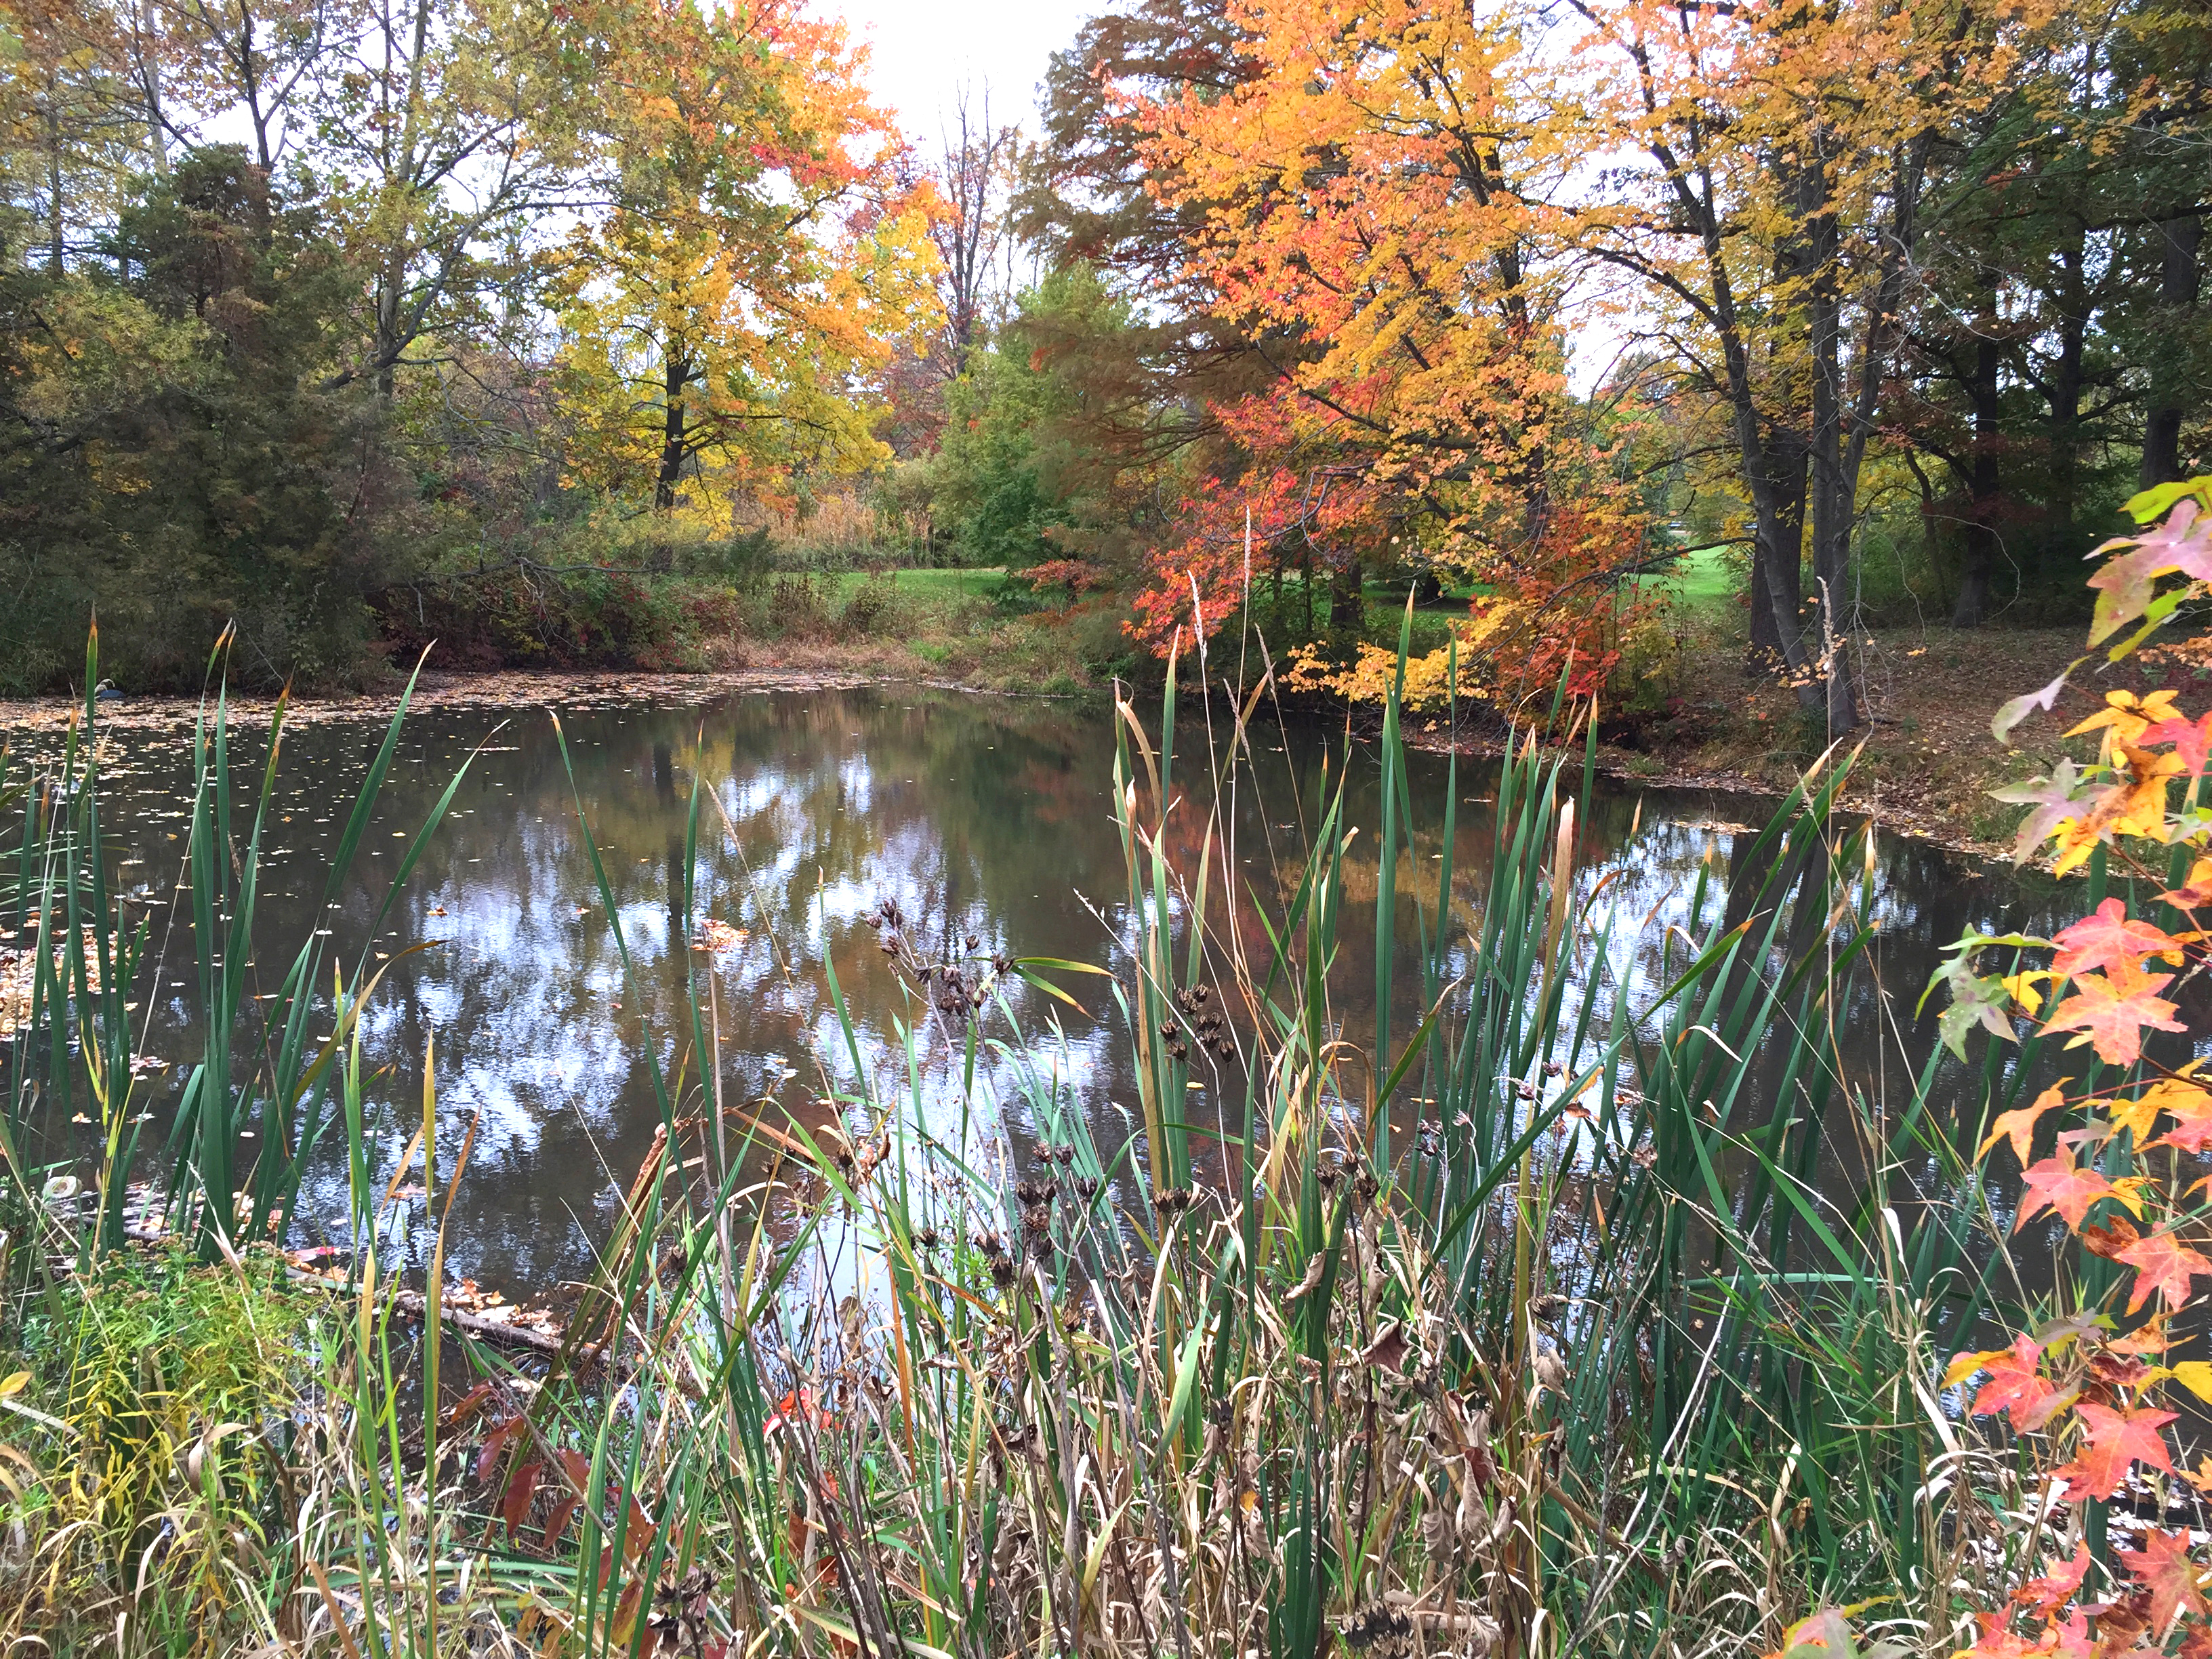 Pond during Fall